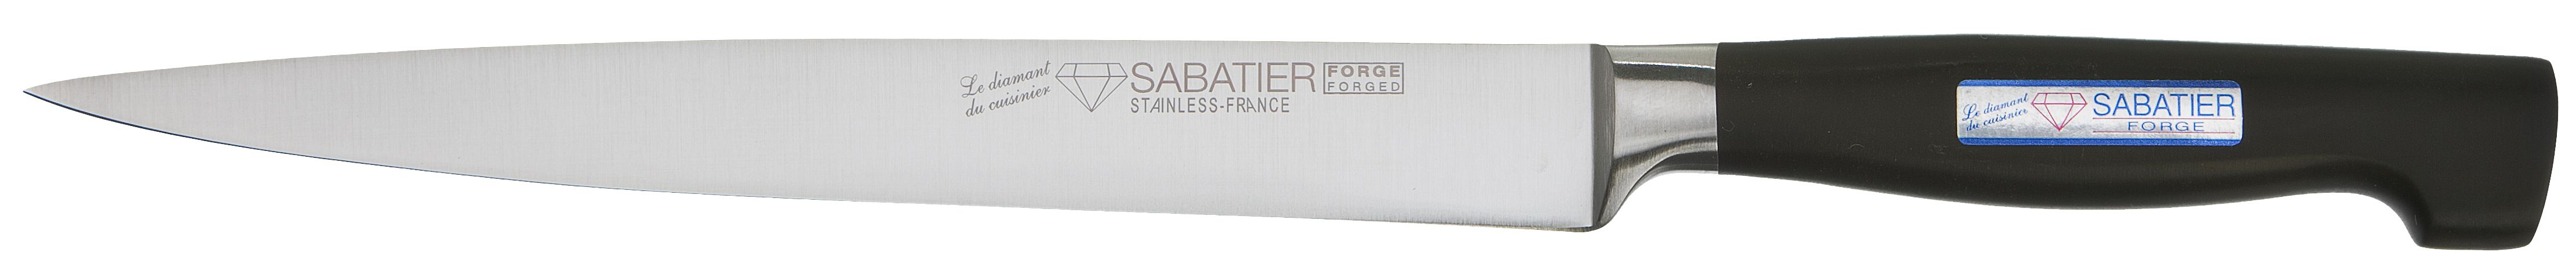 diamant_sabatier_fileermes_forge_17_cm.jpg